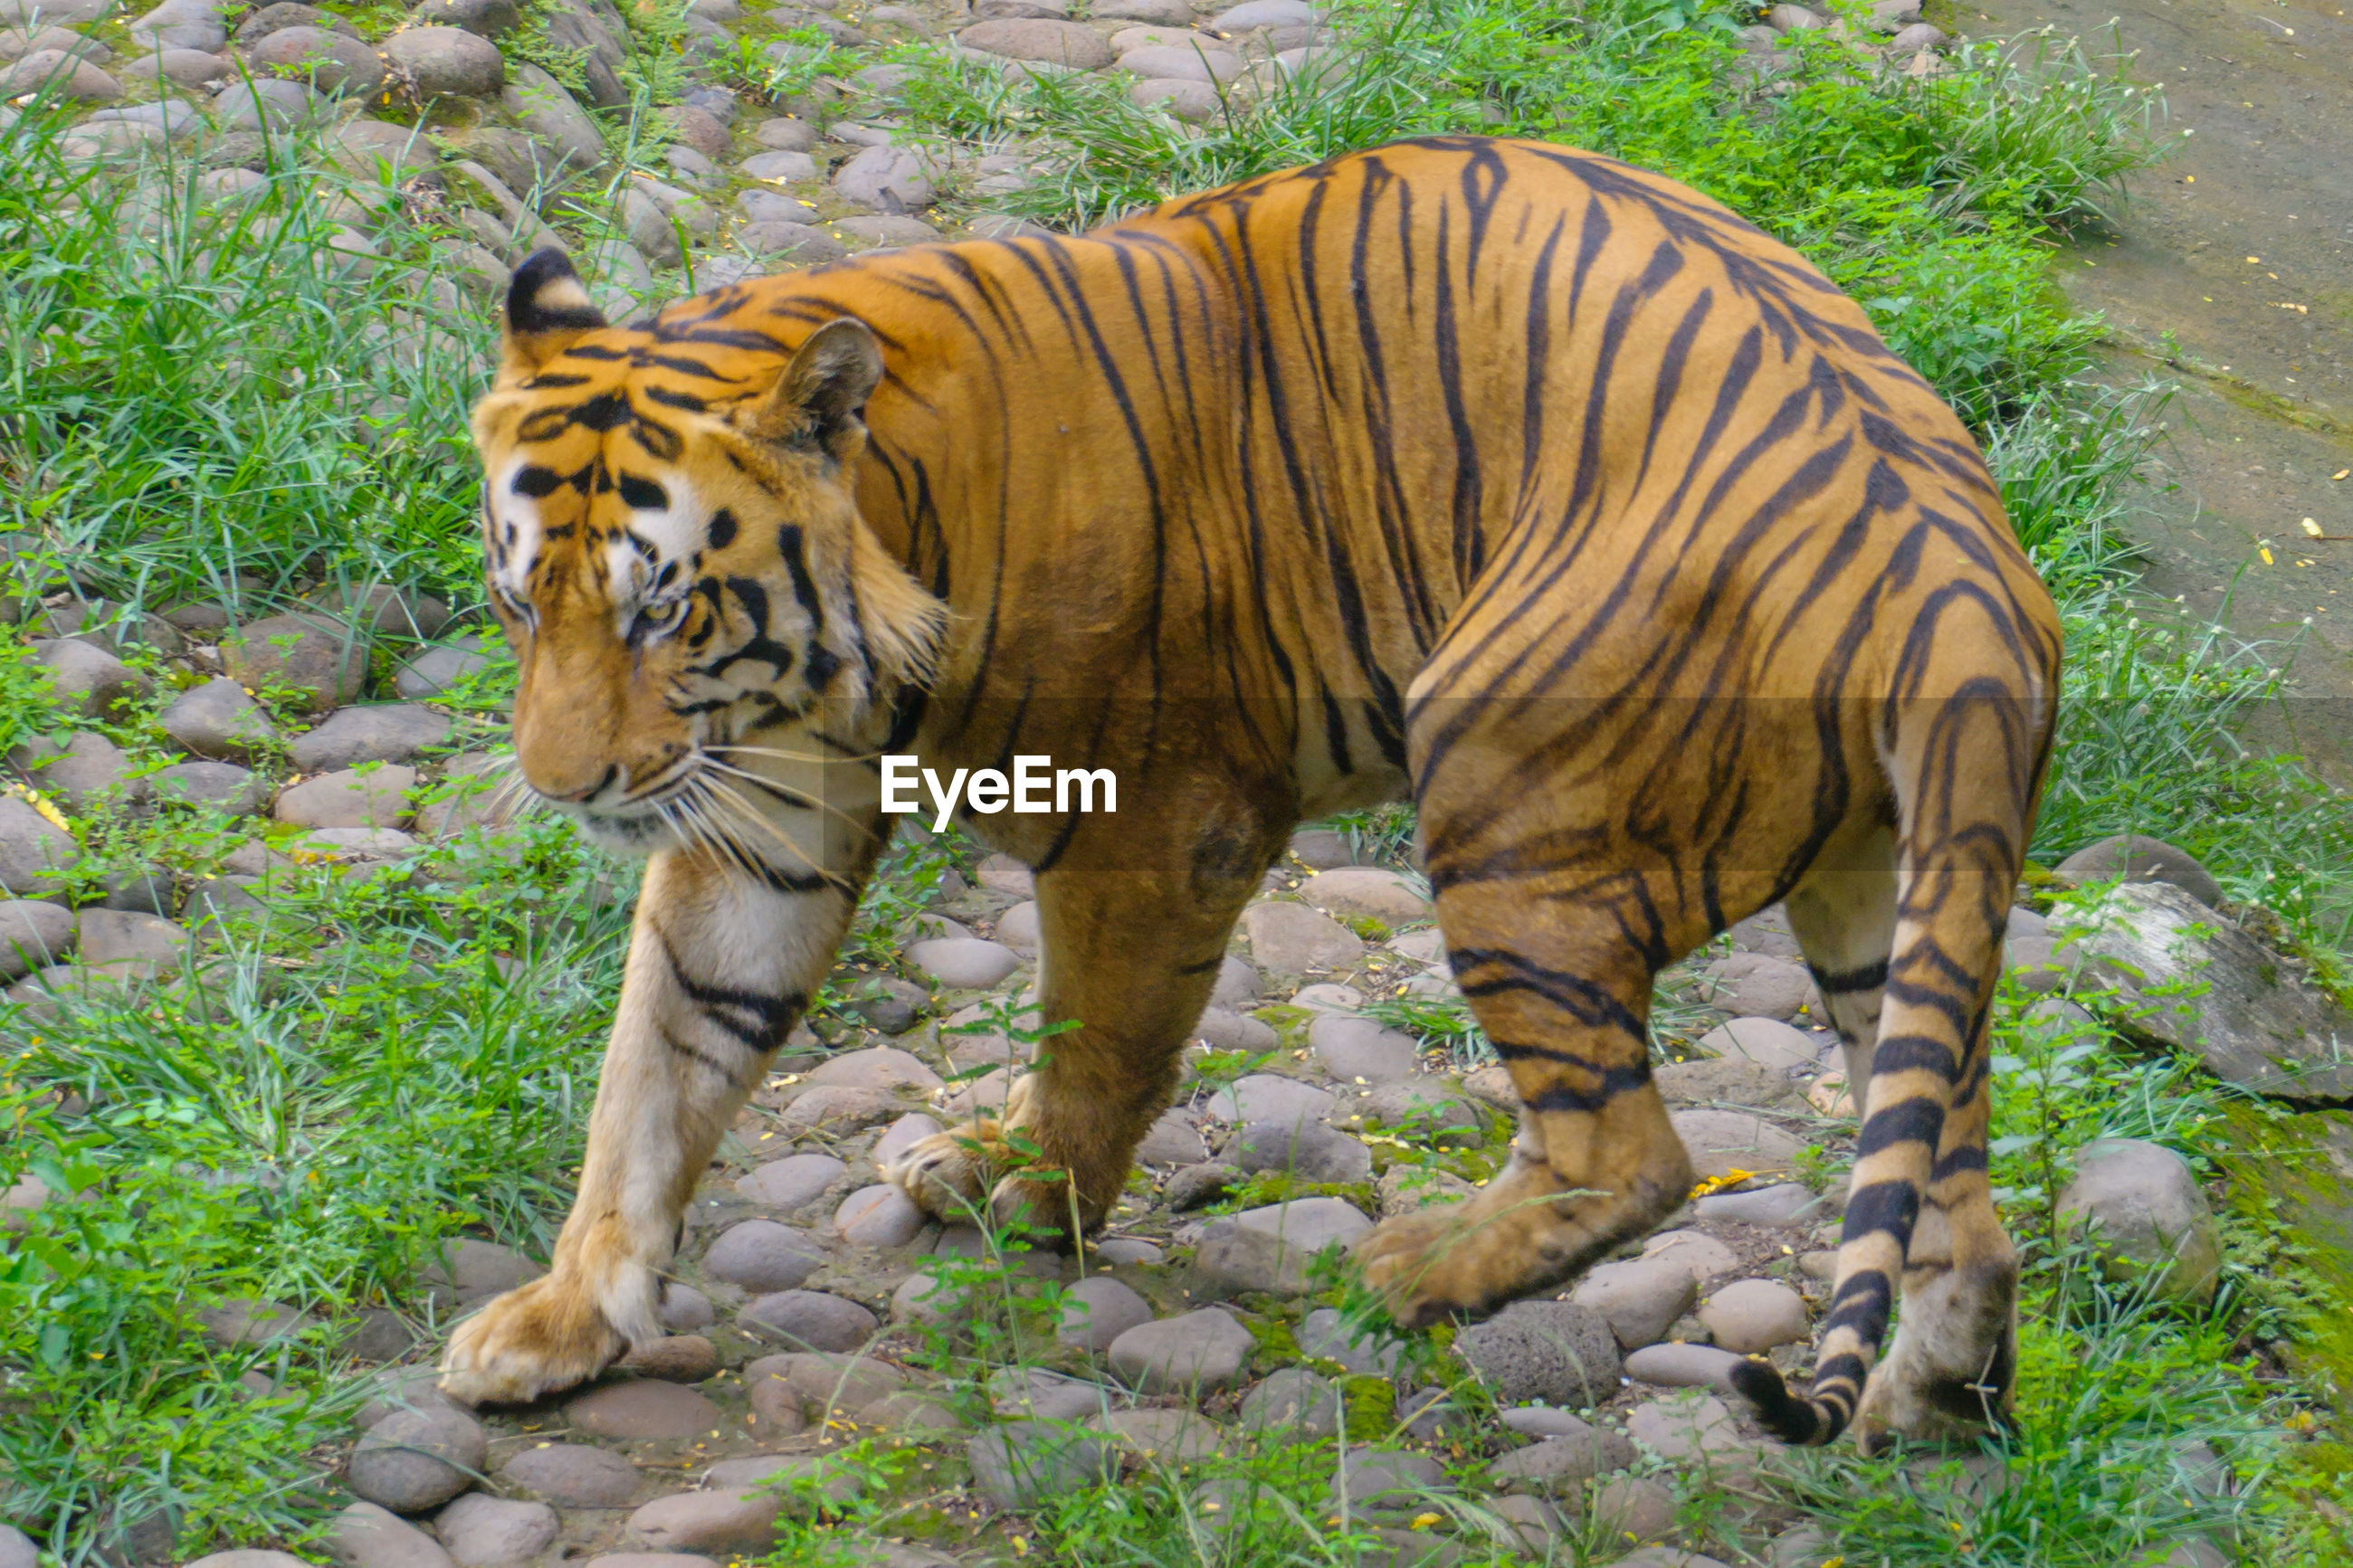 VIEW OF TIGER